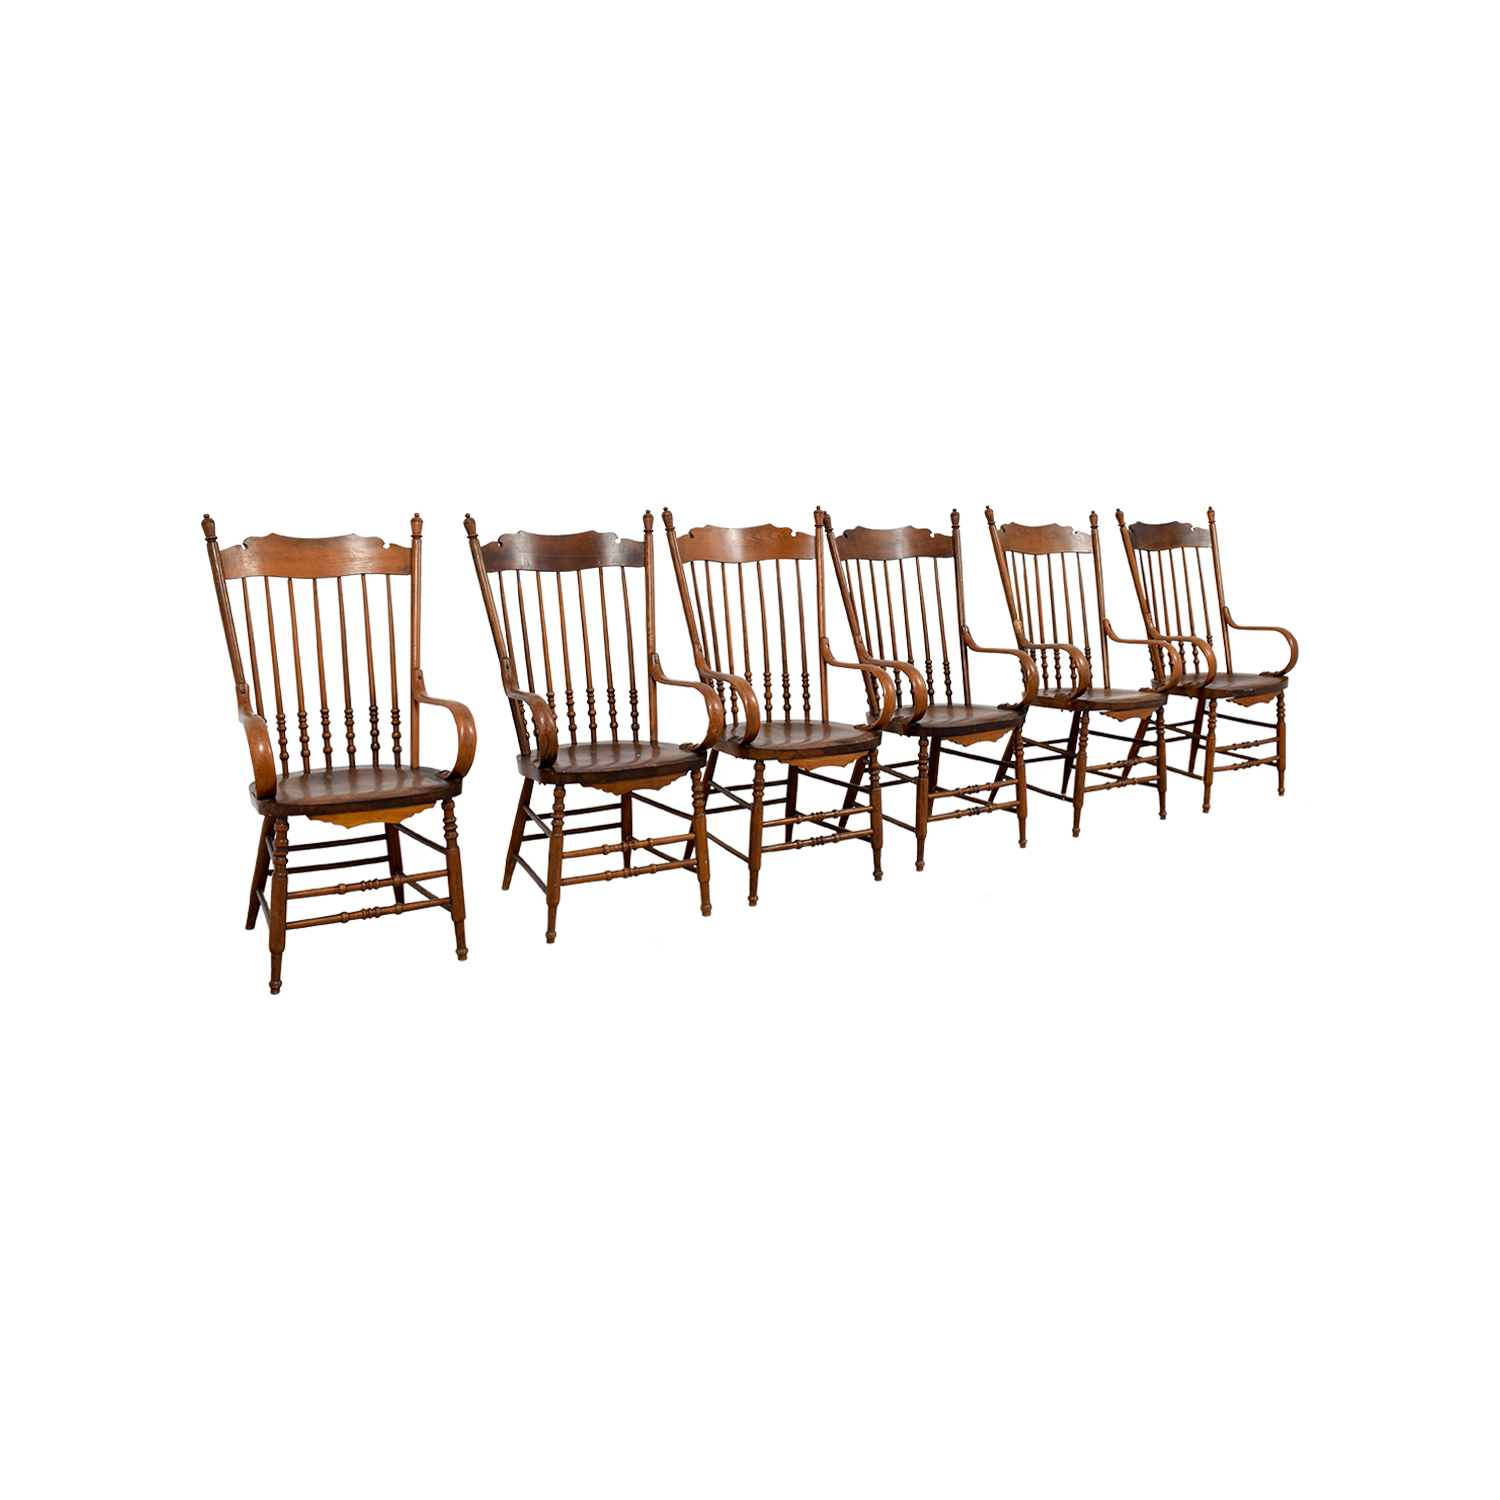 windsor chair with arms walmart wicker cushions 89 off antique chairs